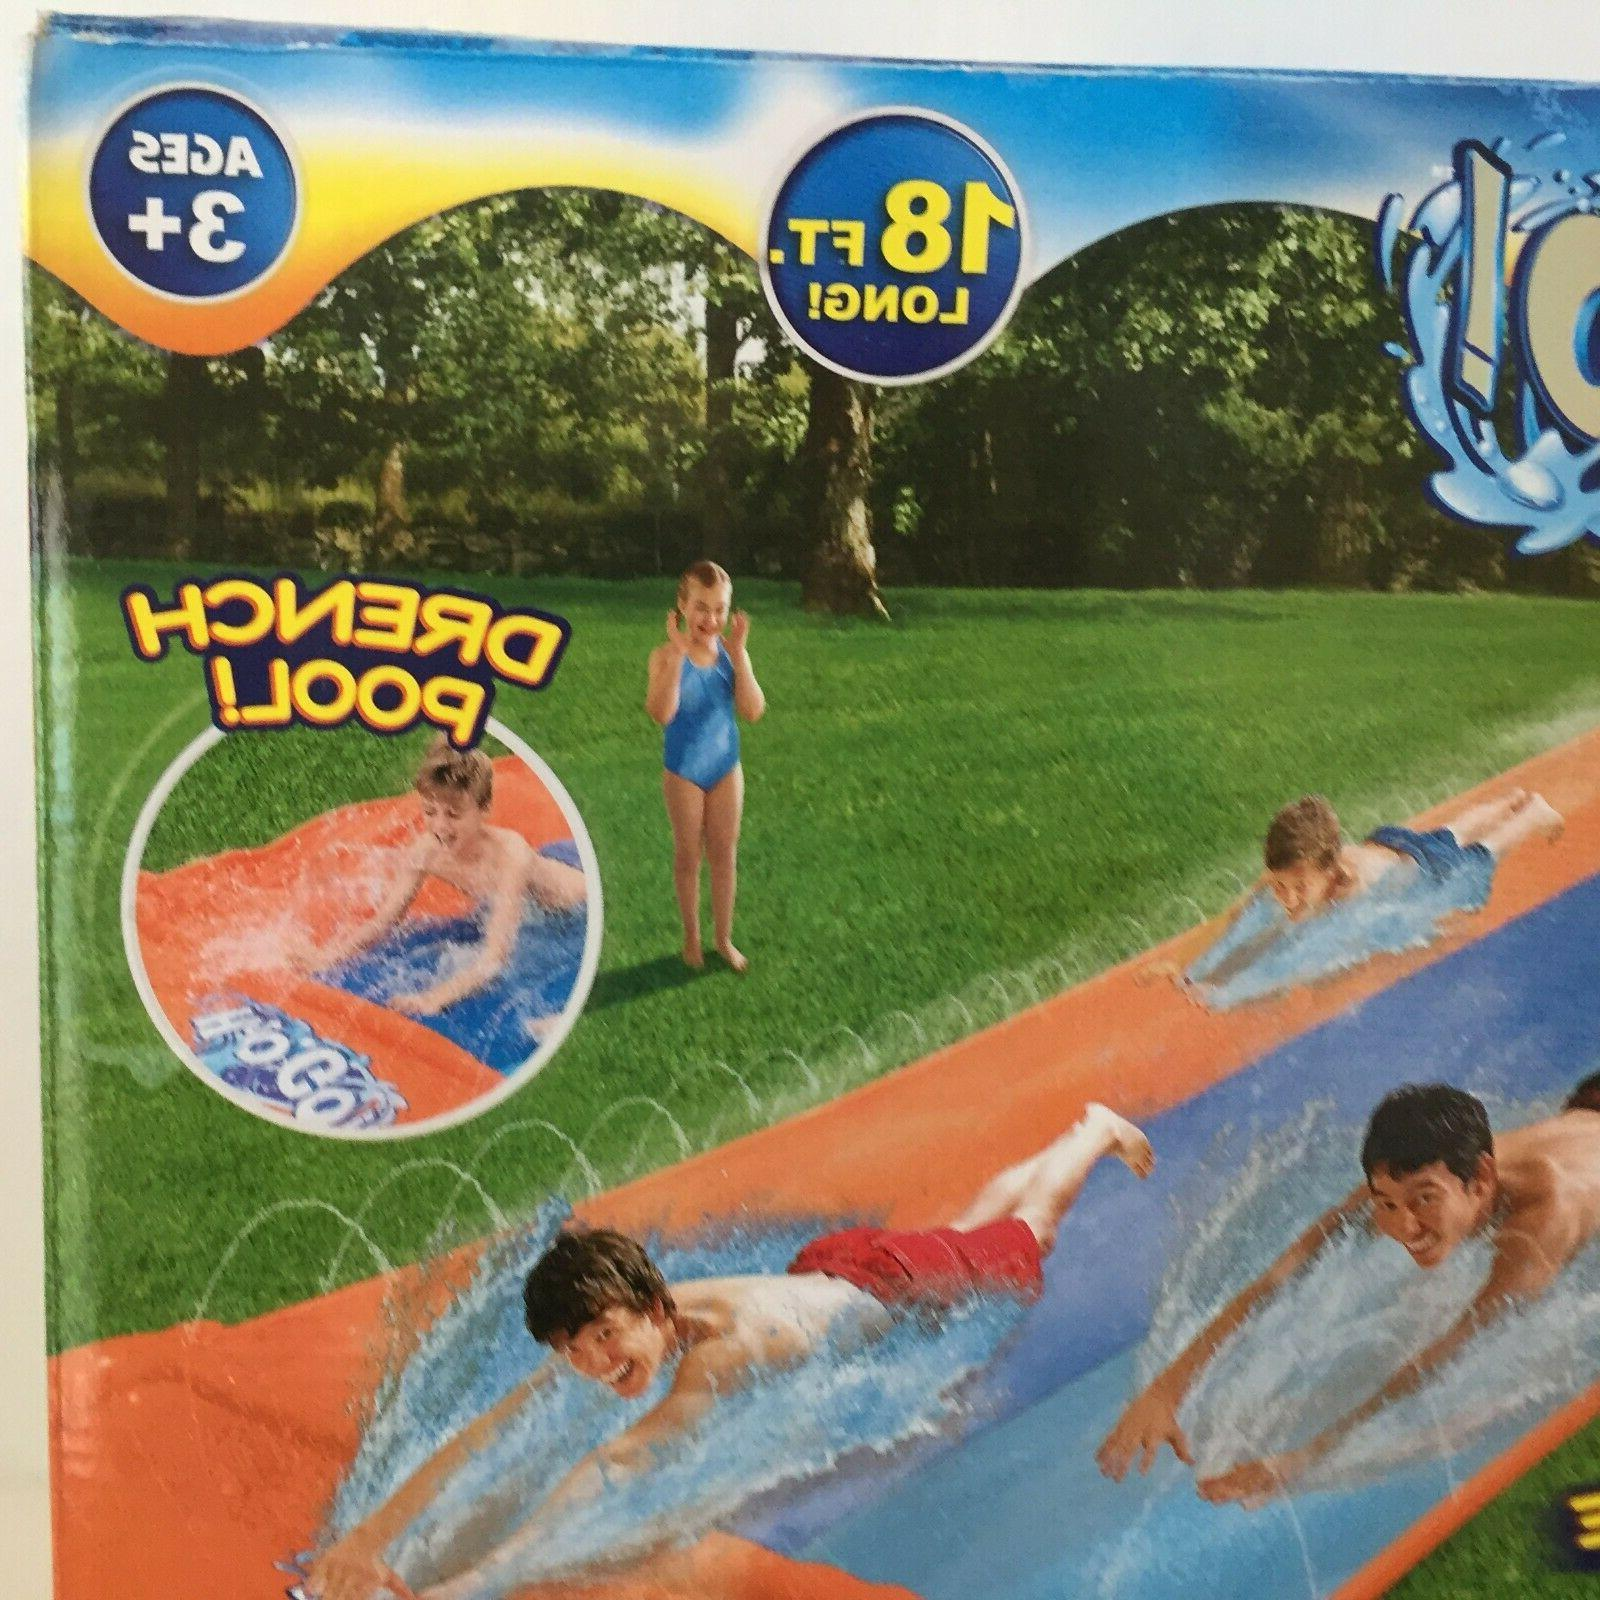 H20GO! Lane Inflatable Slide Speed Lawn